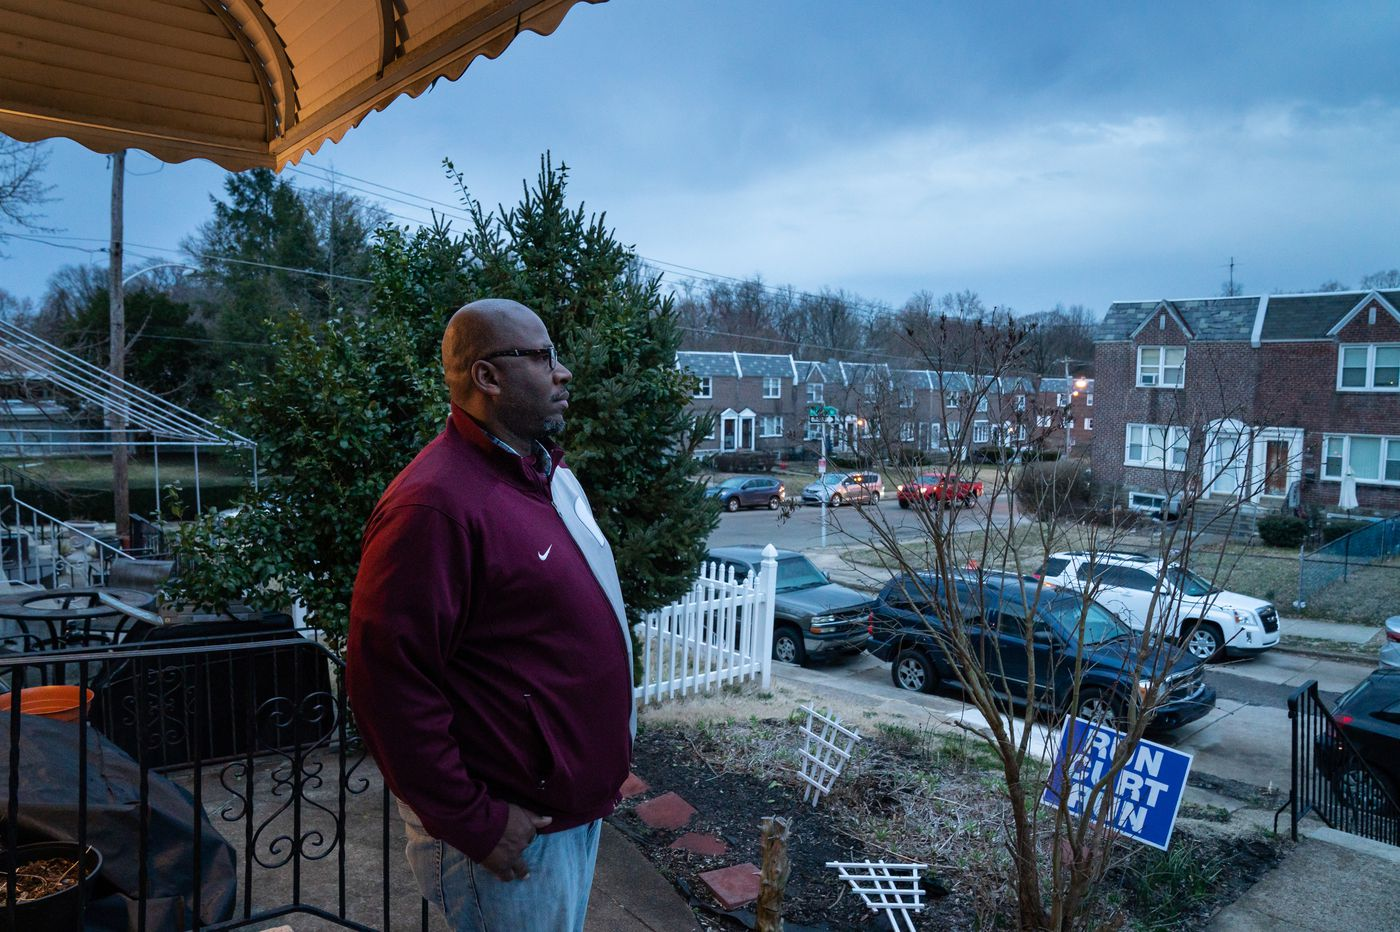 After 4 killings, Overbrook Park, once an island of calm on the edge of Philly, is itself on edge